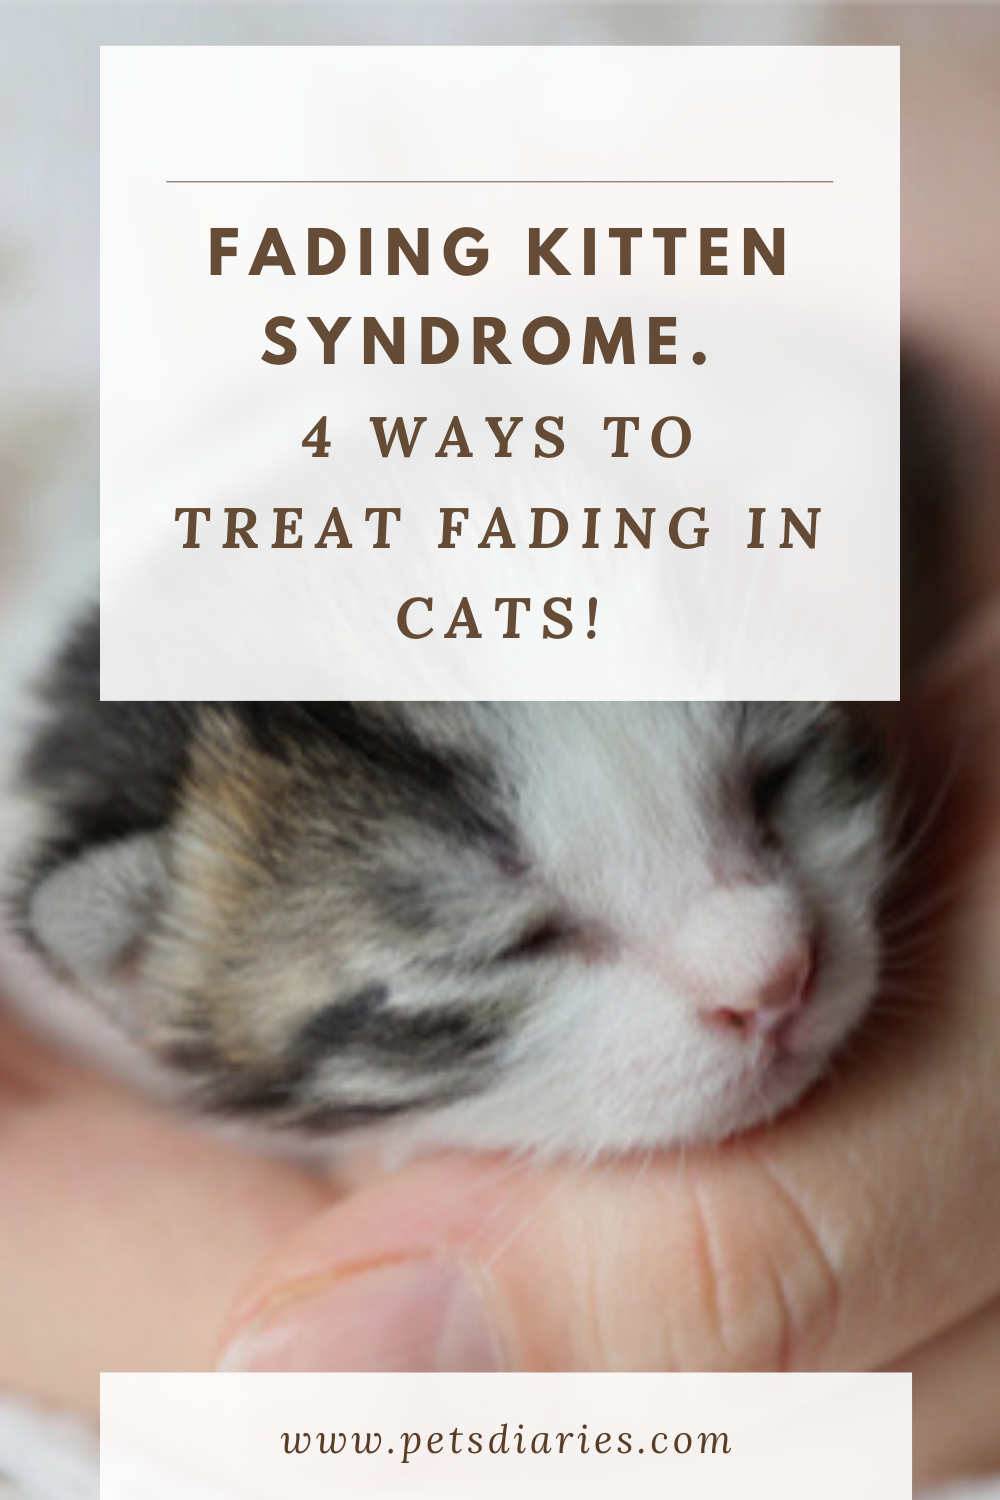 Fading Kitten Syndrome Cat Health Problems Issues And Signs Cat Health Care Tips Cat Issues In 2020 Cat Health Problems Cat Health Care Kitten